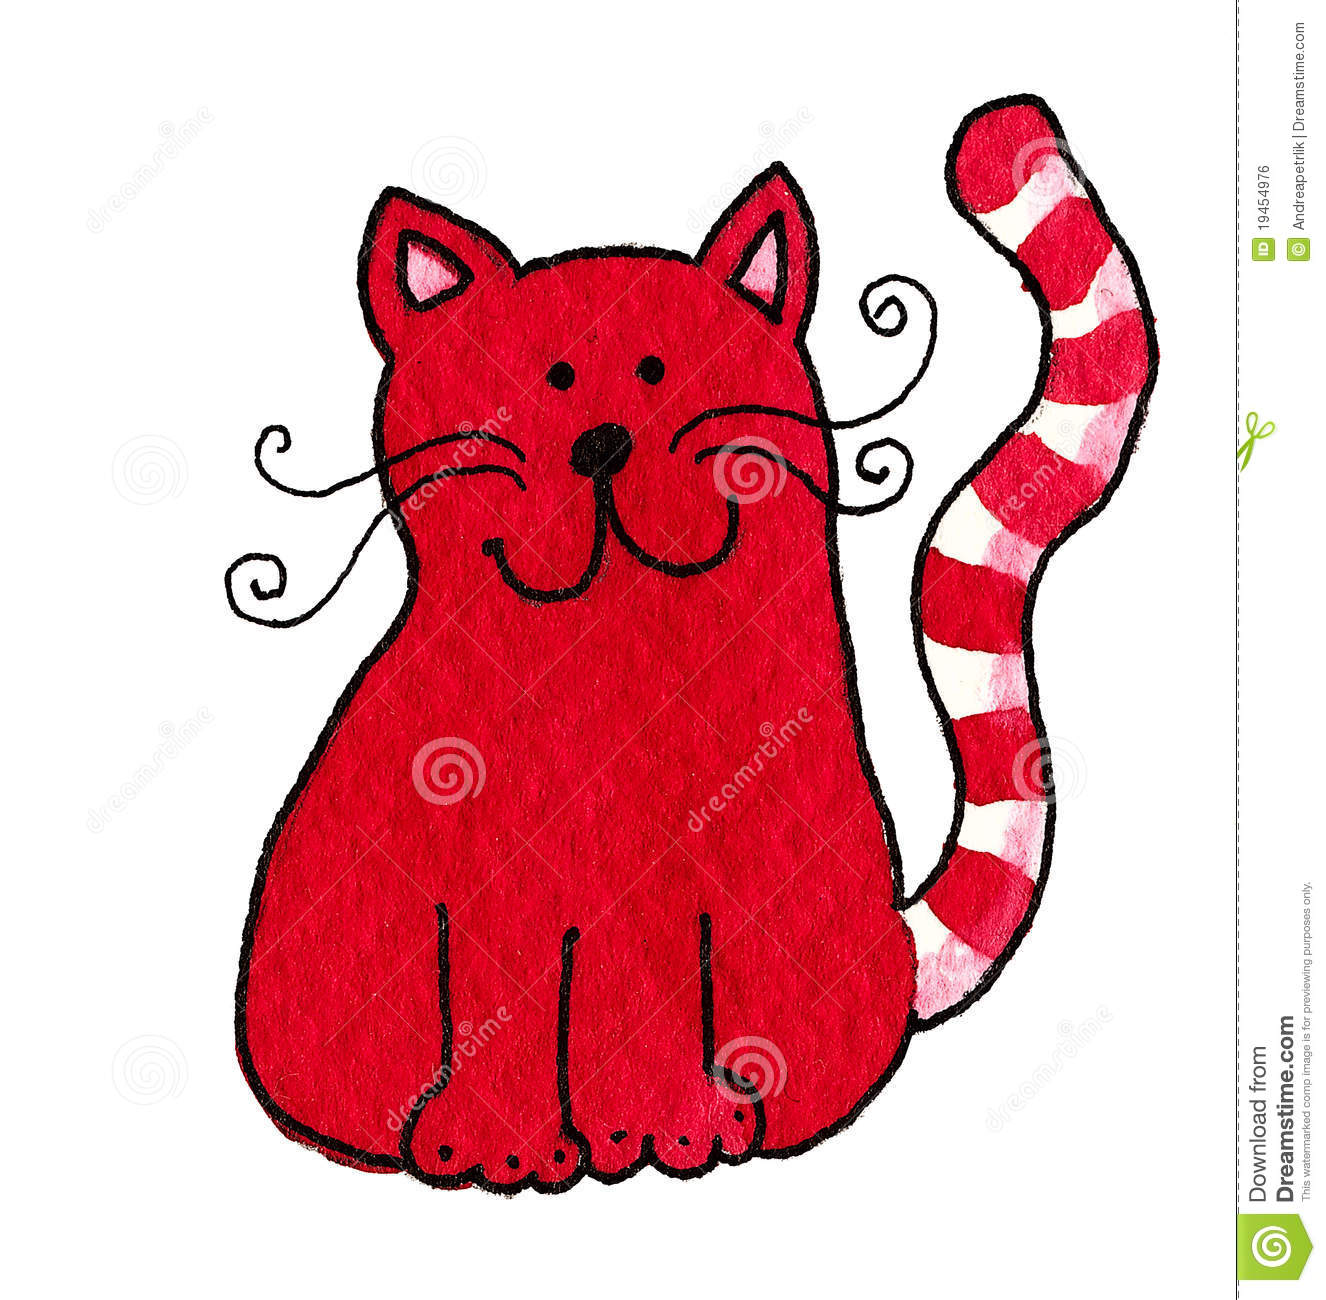 cute red cat royalty free stock image image 19454976 free pig clipart black and white free pig clipart black white